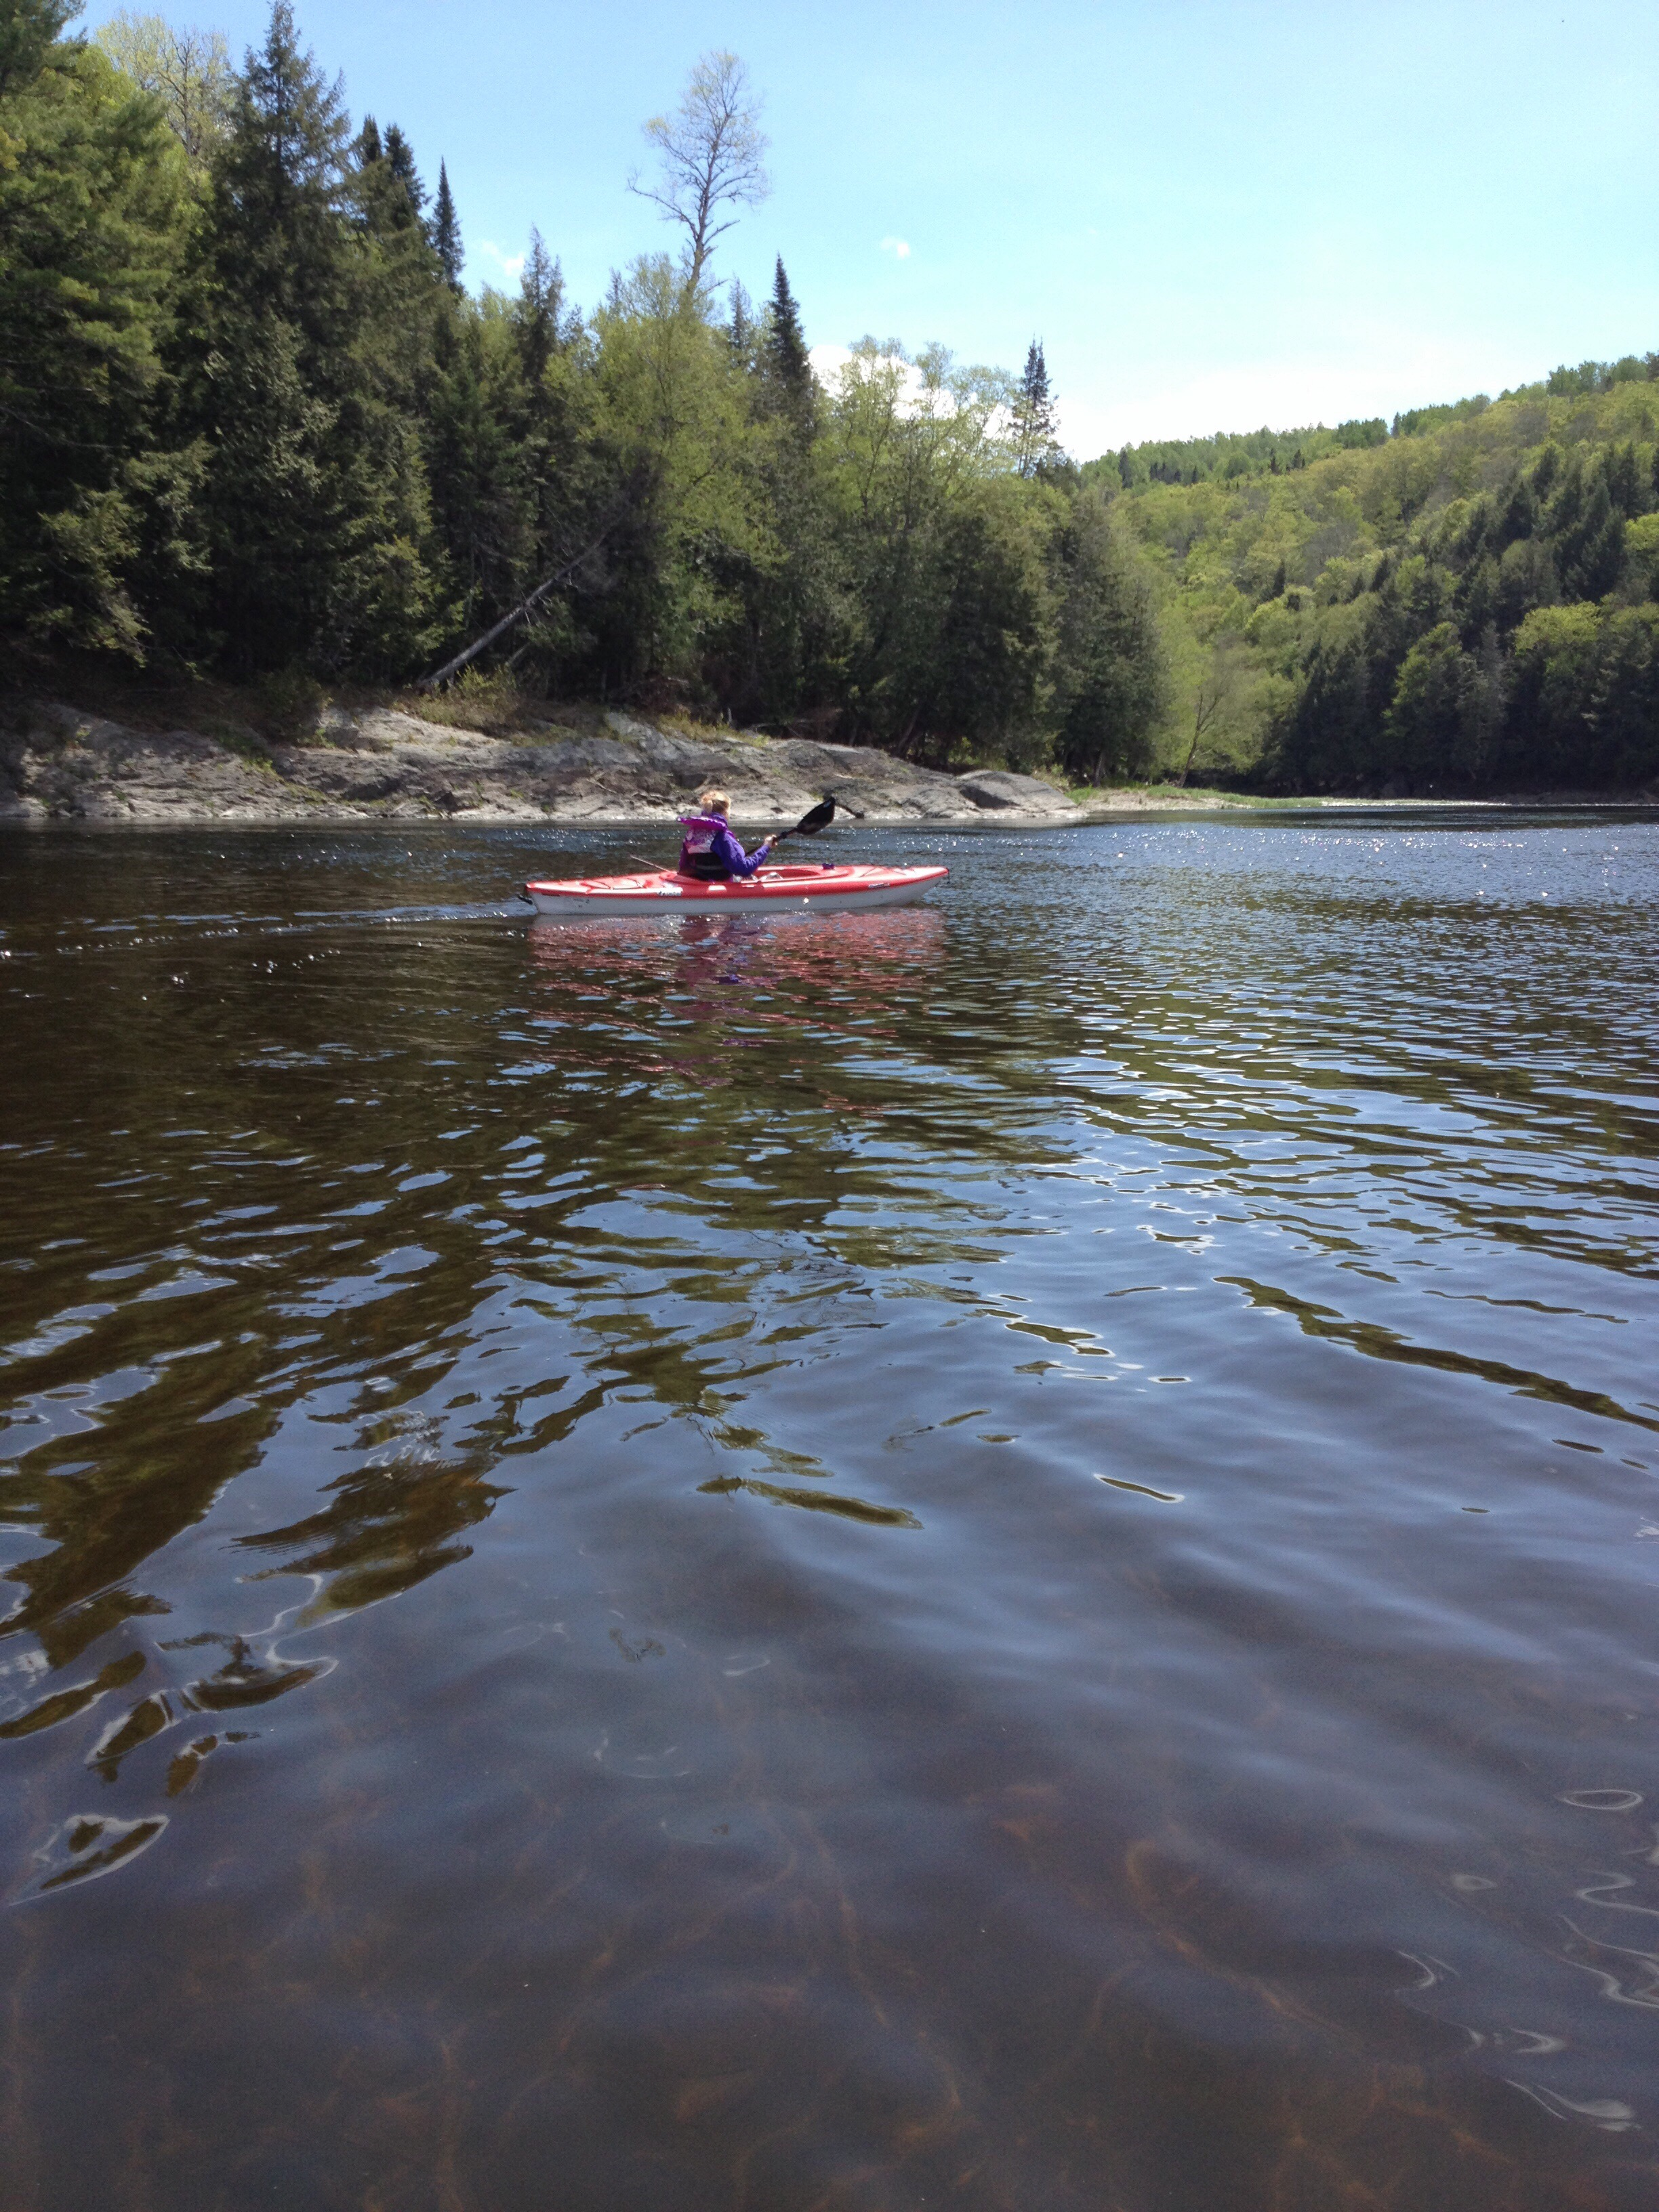 Kayaking on the Meduxnekeag